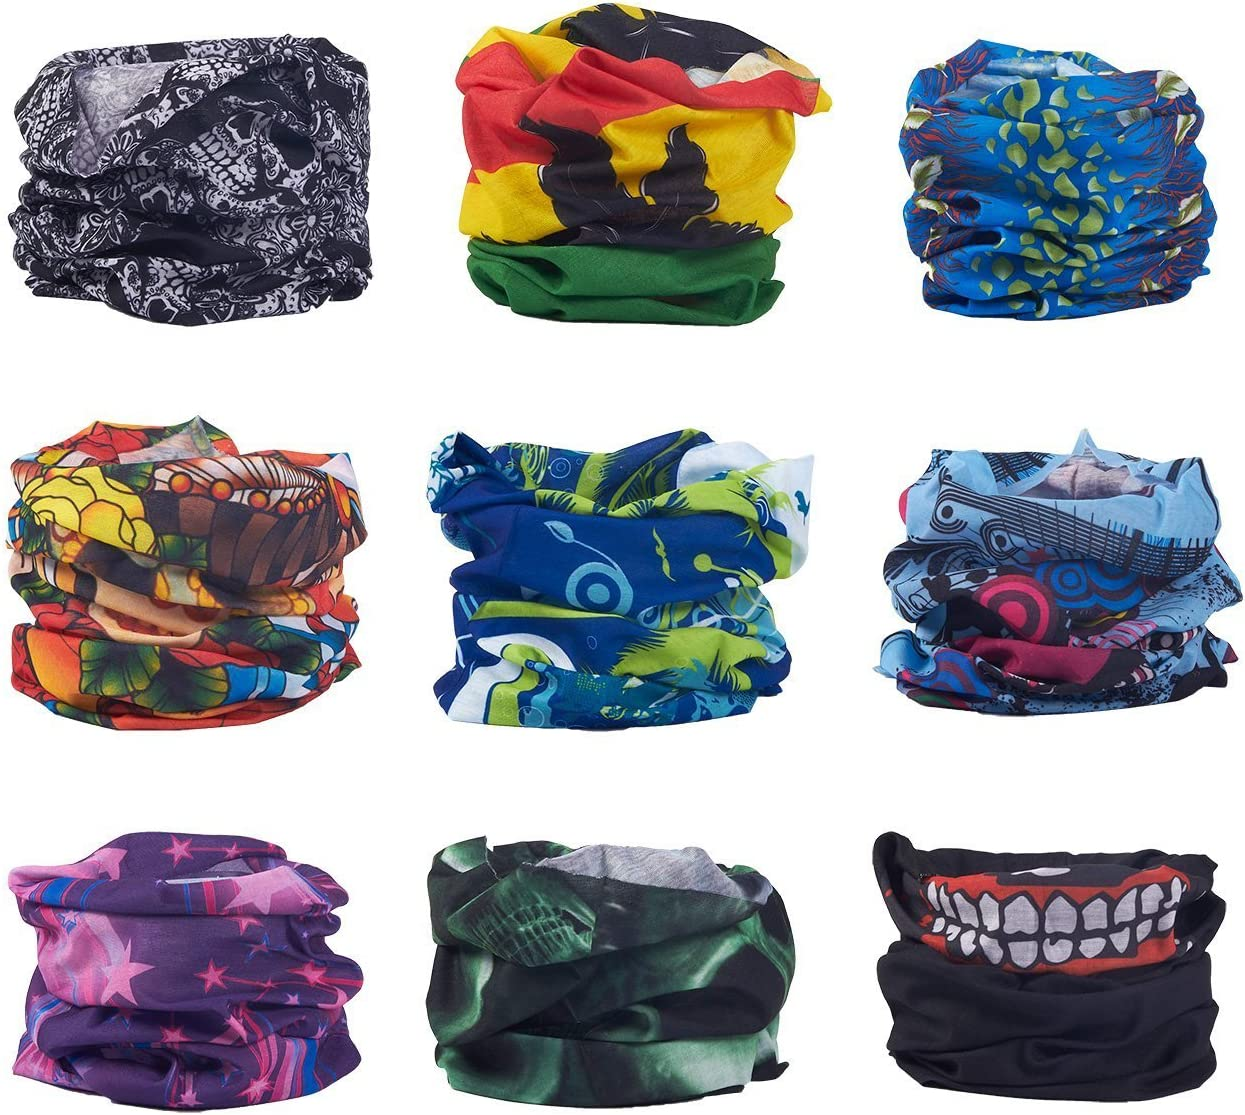 Neck Gaiter Helmet Liners Use As Headwraps 18.75 x 9.75 Inches Multipurpose Headwear for UV Protection 9-Piece Seamless Bandana Face Mask Raves 9 Assorted Designs for Outdoor Sports